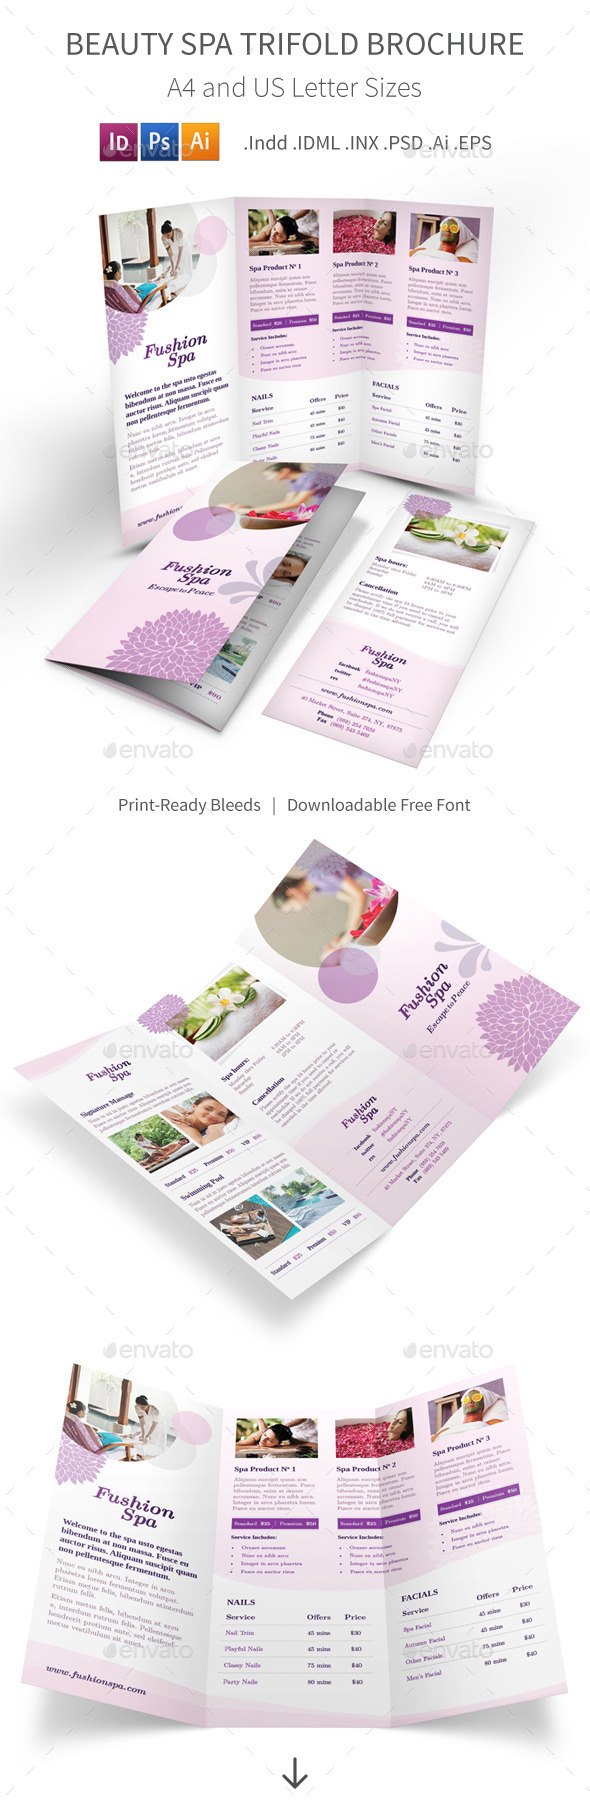 Beauty spa trifold brochure by mike pantone graphicriver for Adda beauty salon cartierul latin